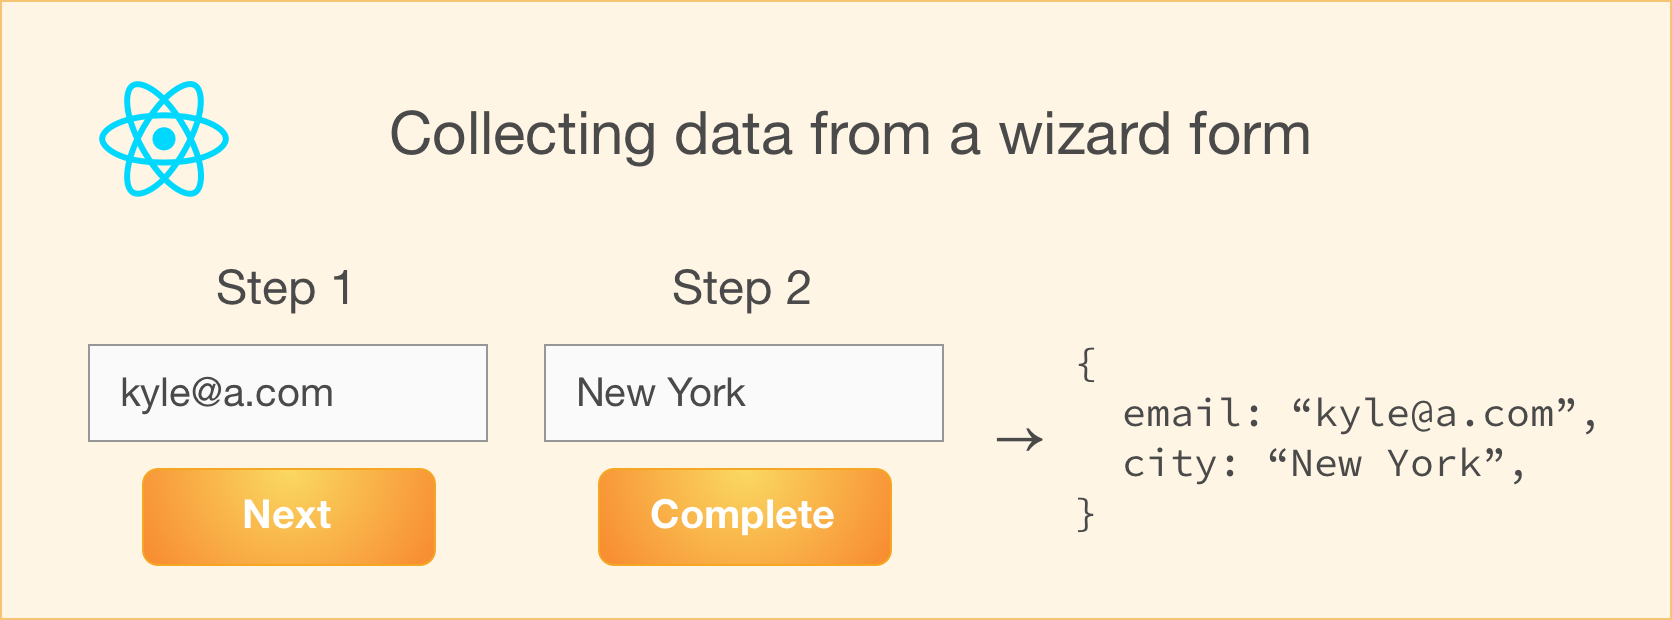 Collecting data from a wizard form